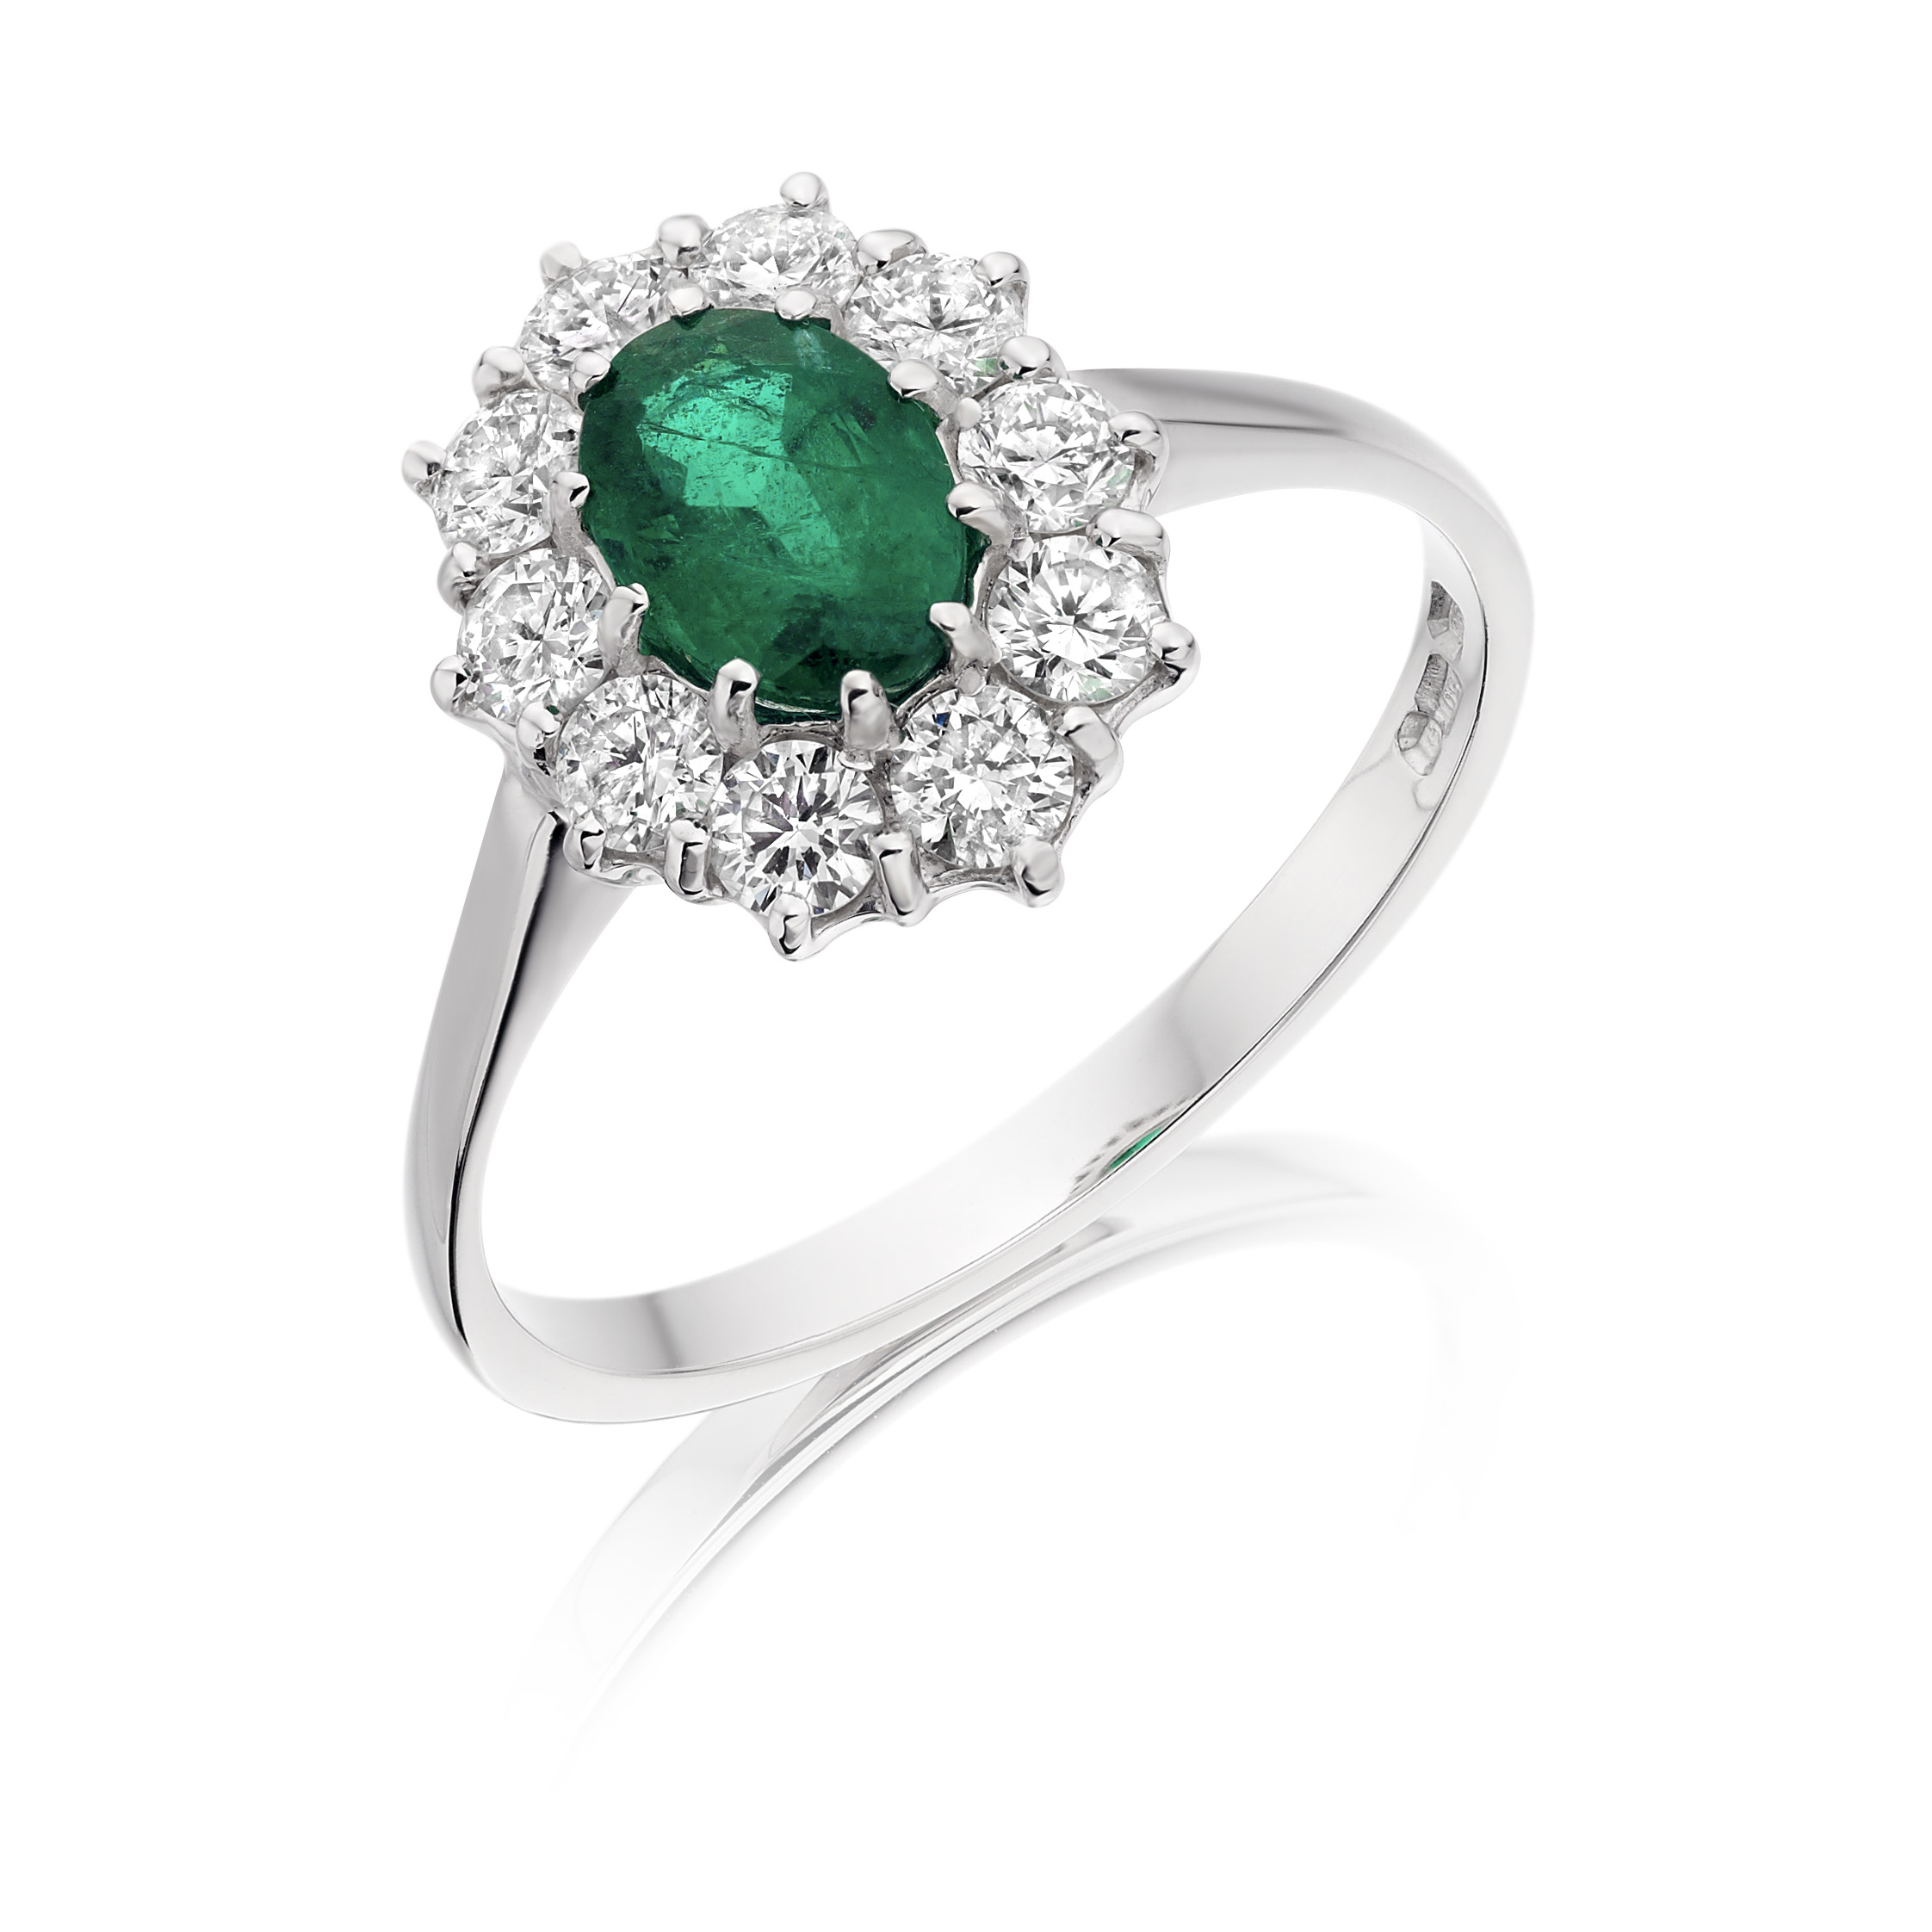 page not found approved diamonds finecraft jewellery in